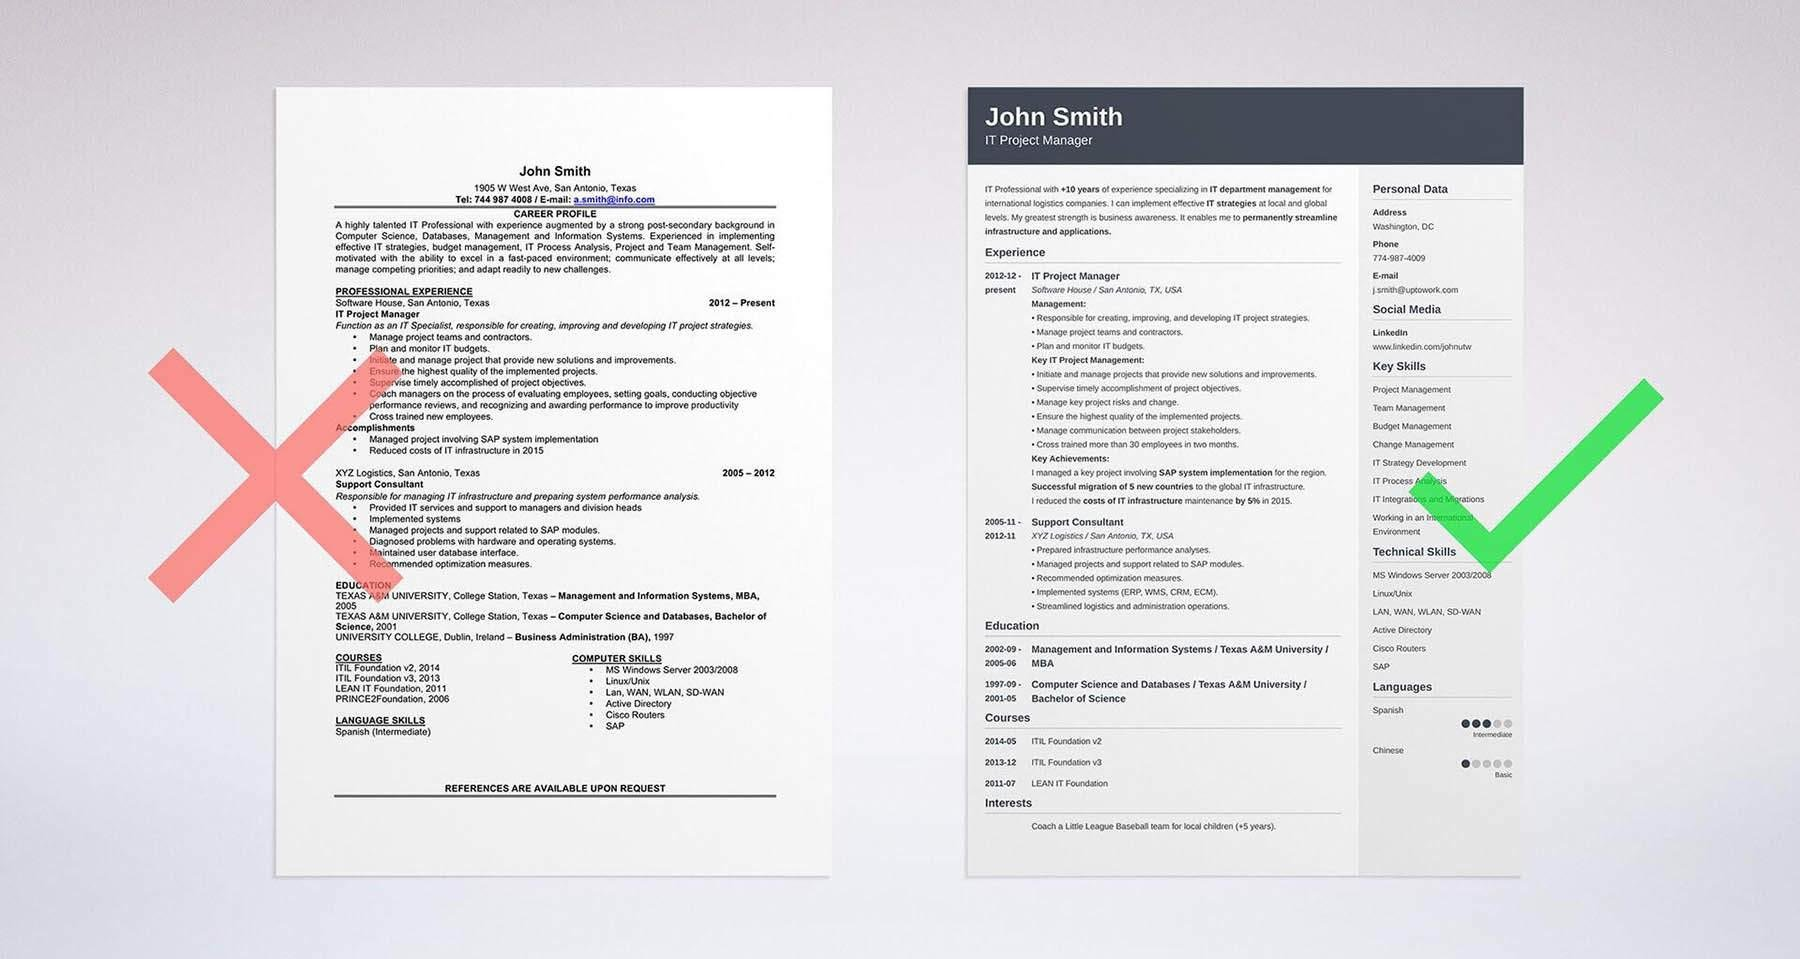 Highlight Your Resume Objective With Our Templates   Create Your Resume In  5 Minutes Here.